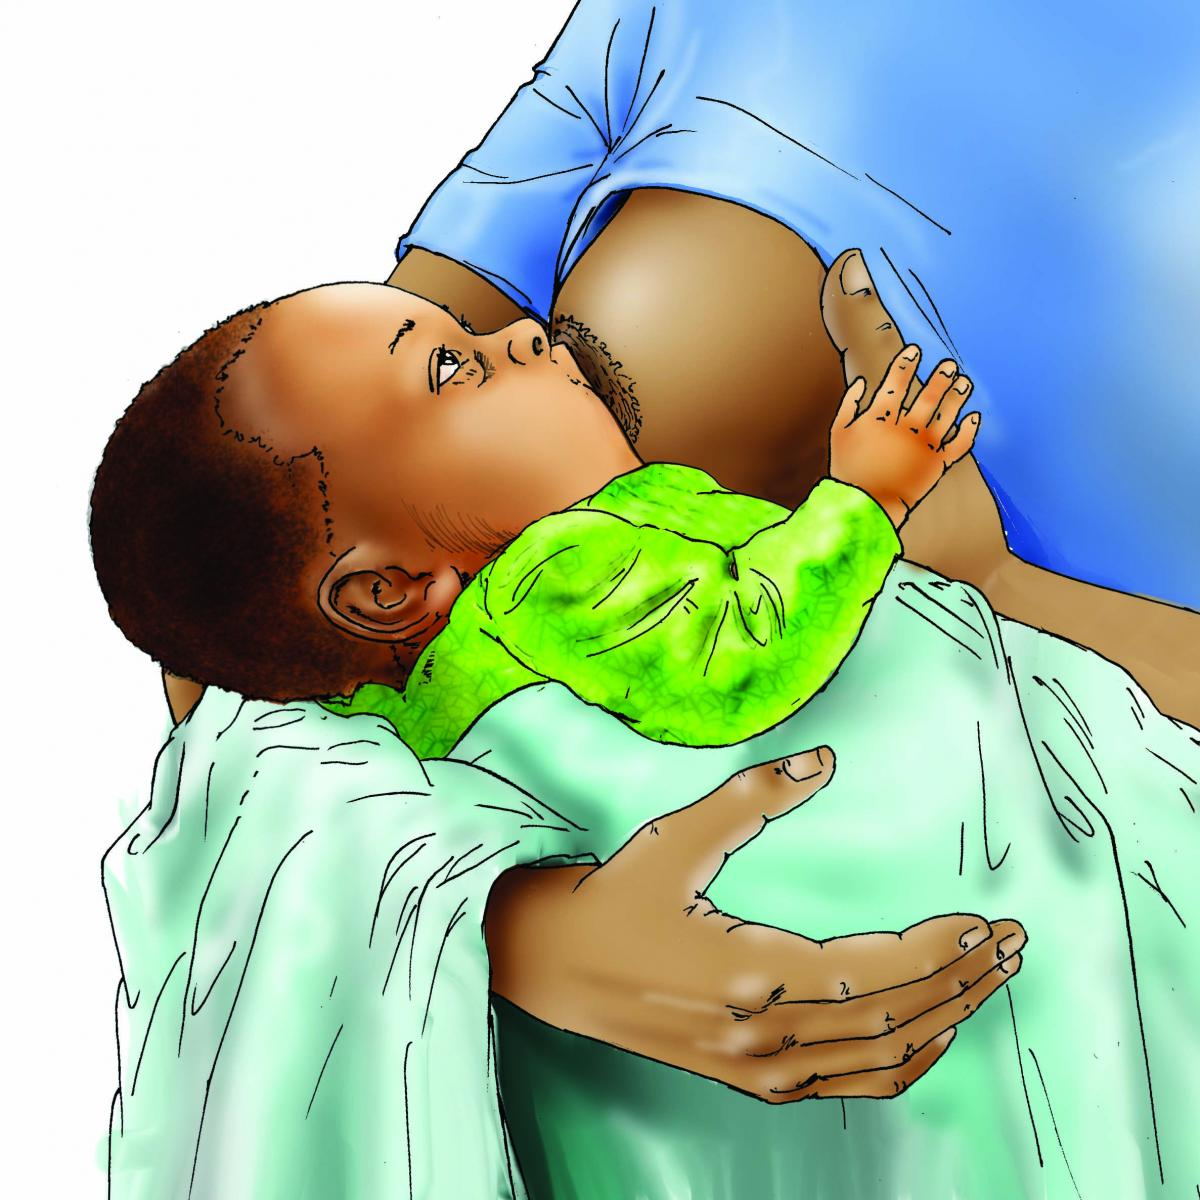 Breastfeeding - Breastfeeding attachment 0-6 mo - 06C - Nigeria